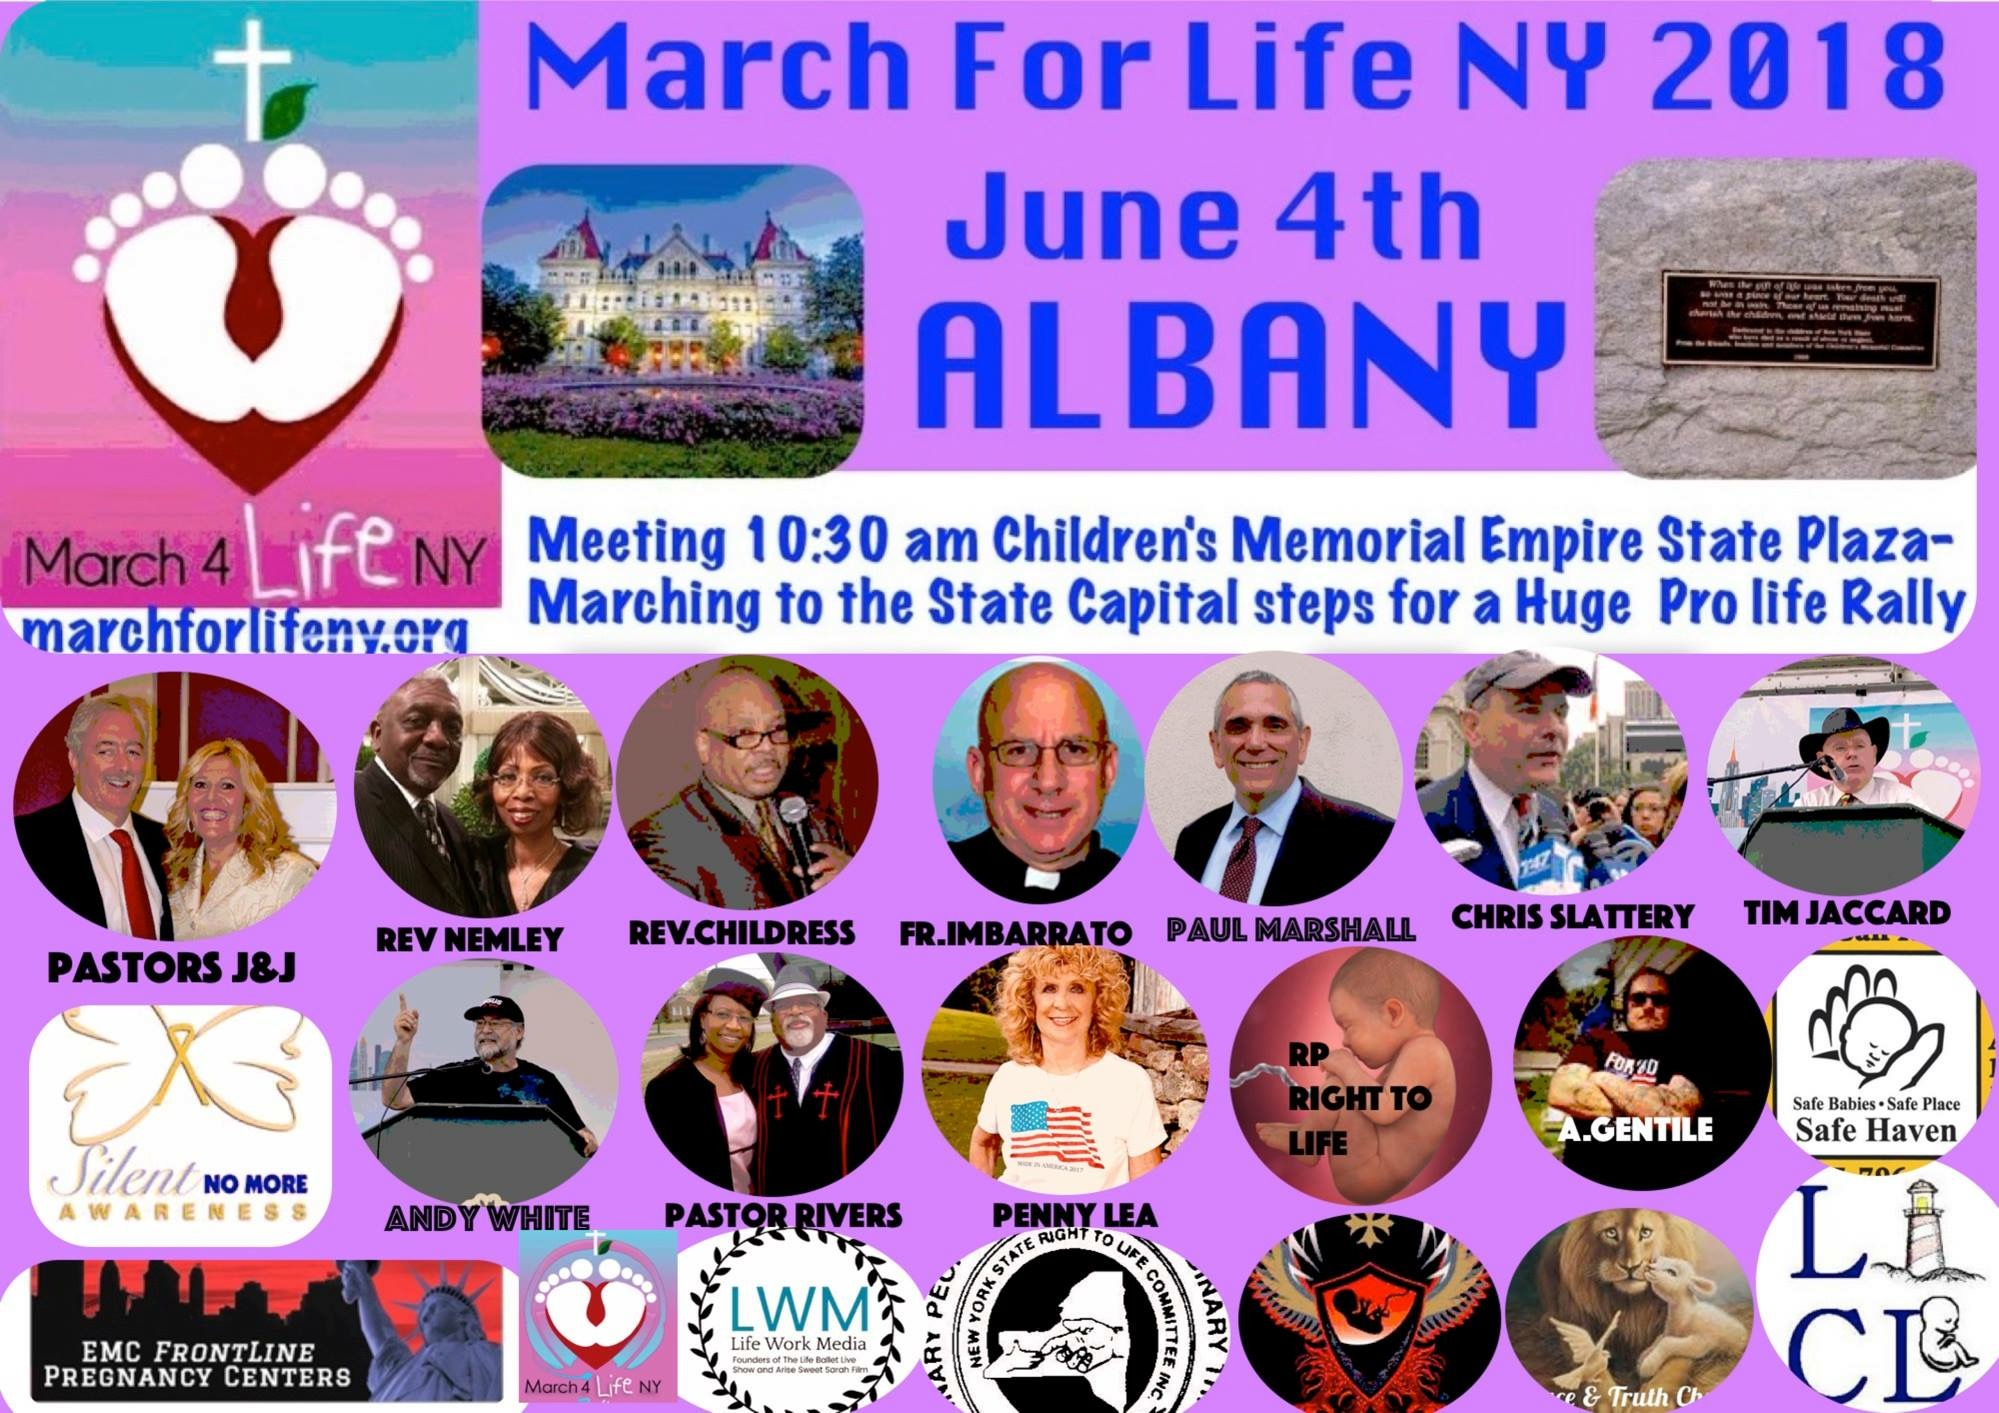 Annual March For Life New York